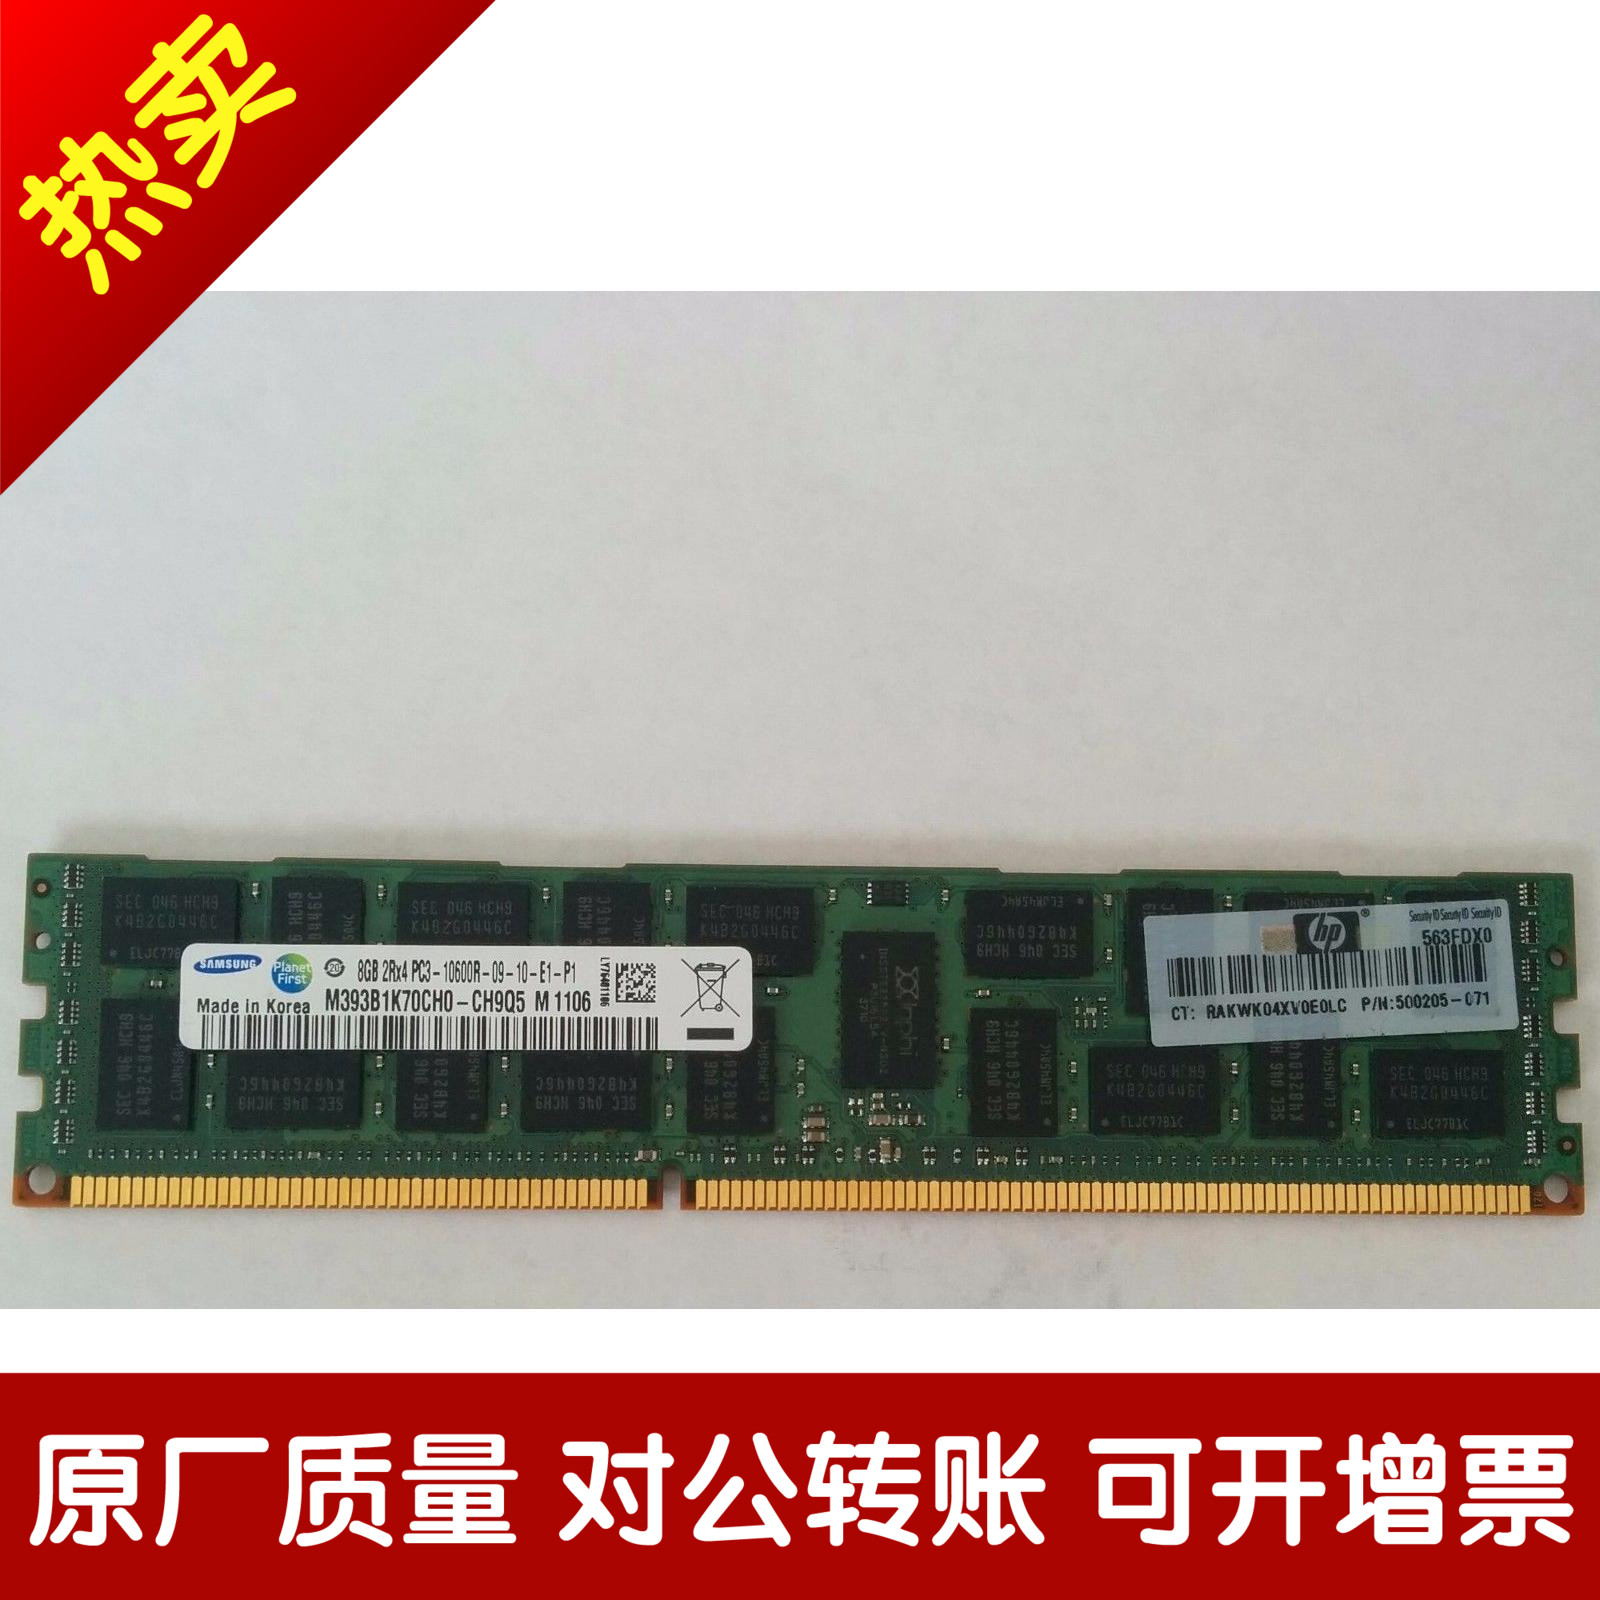 HP HP DL160 G6 DL160SE G6 8G DDR3 1333 REG server memory bar